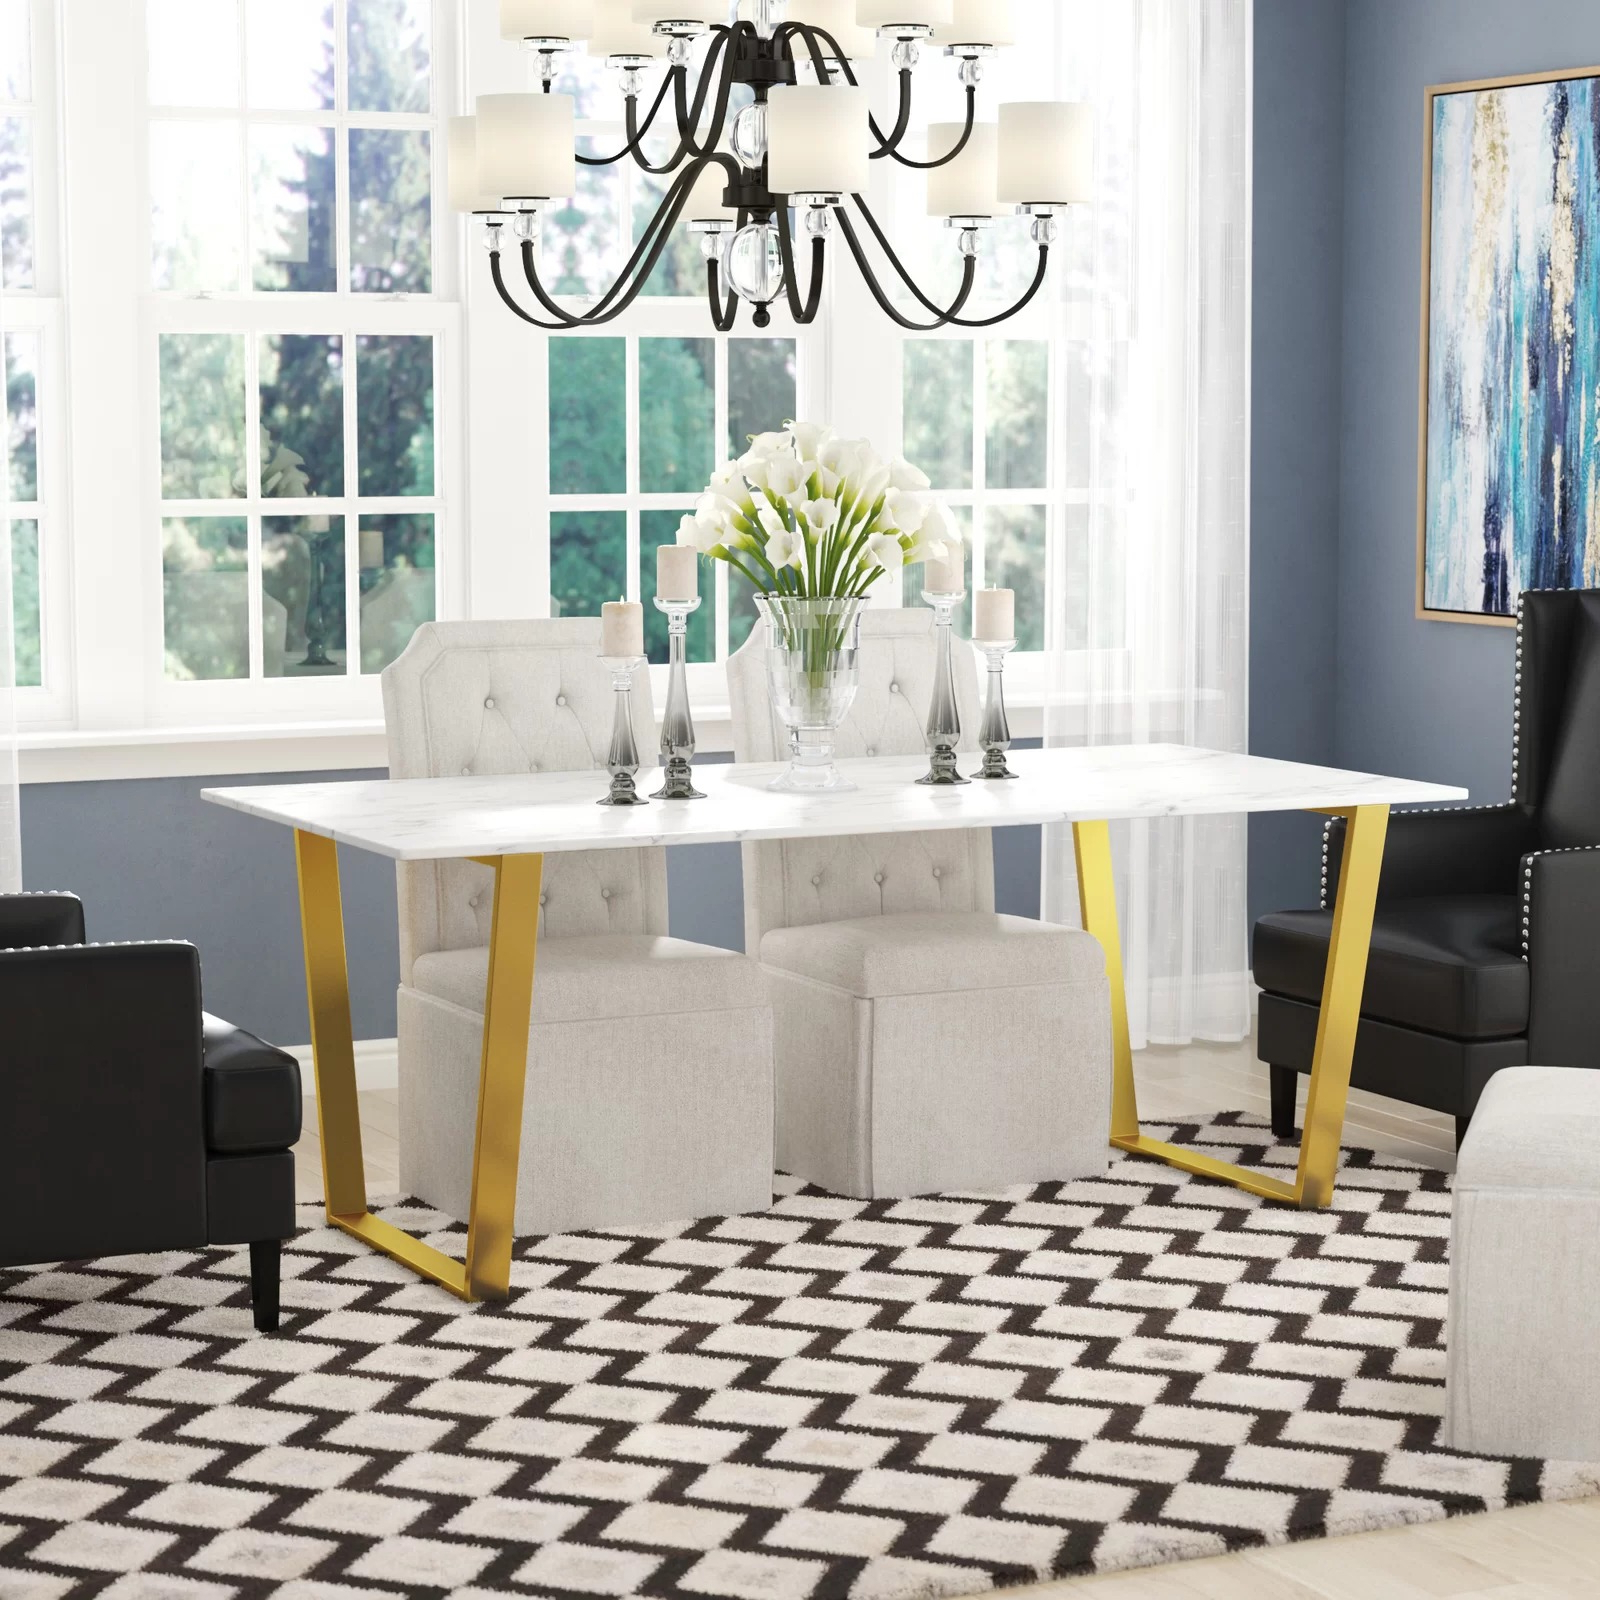 Dining Tables With White Marble Top throughout Well known Thompson Rectangular White Marble Top And Golden Steel Dining Table